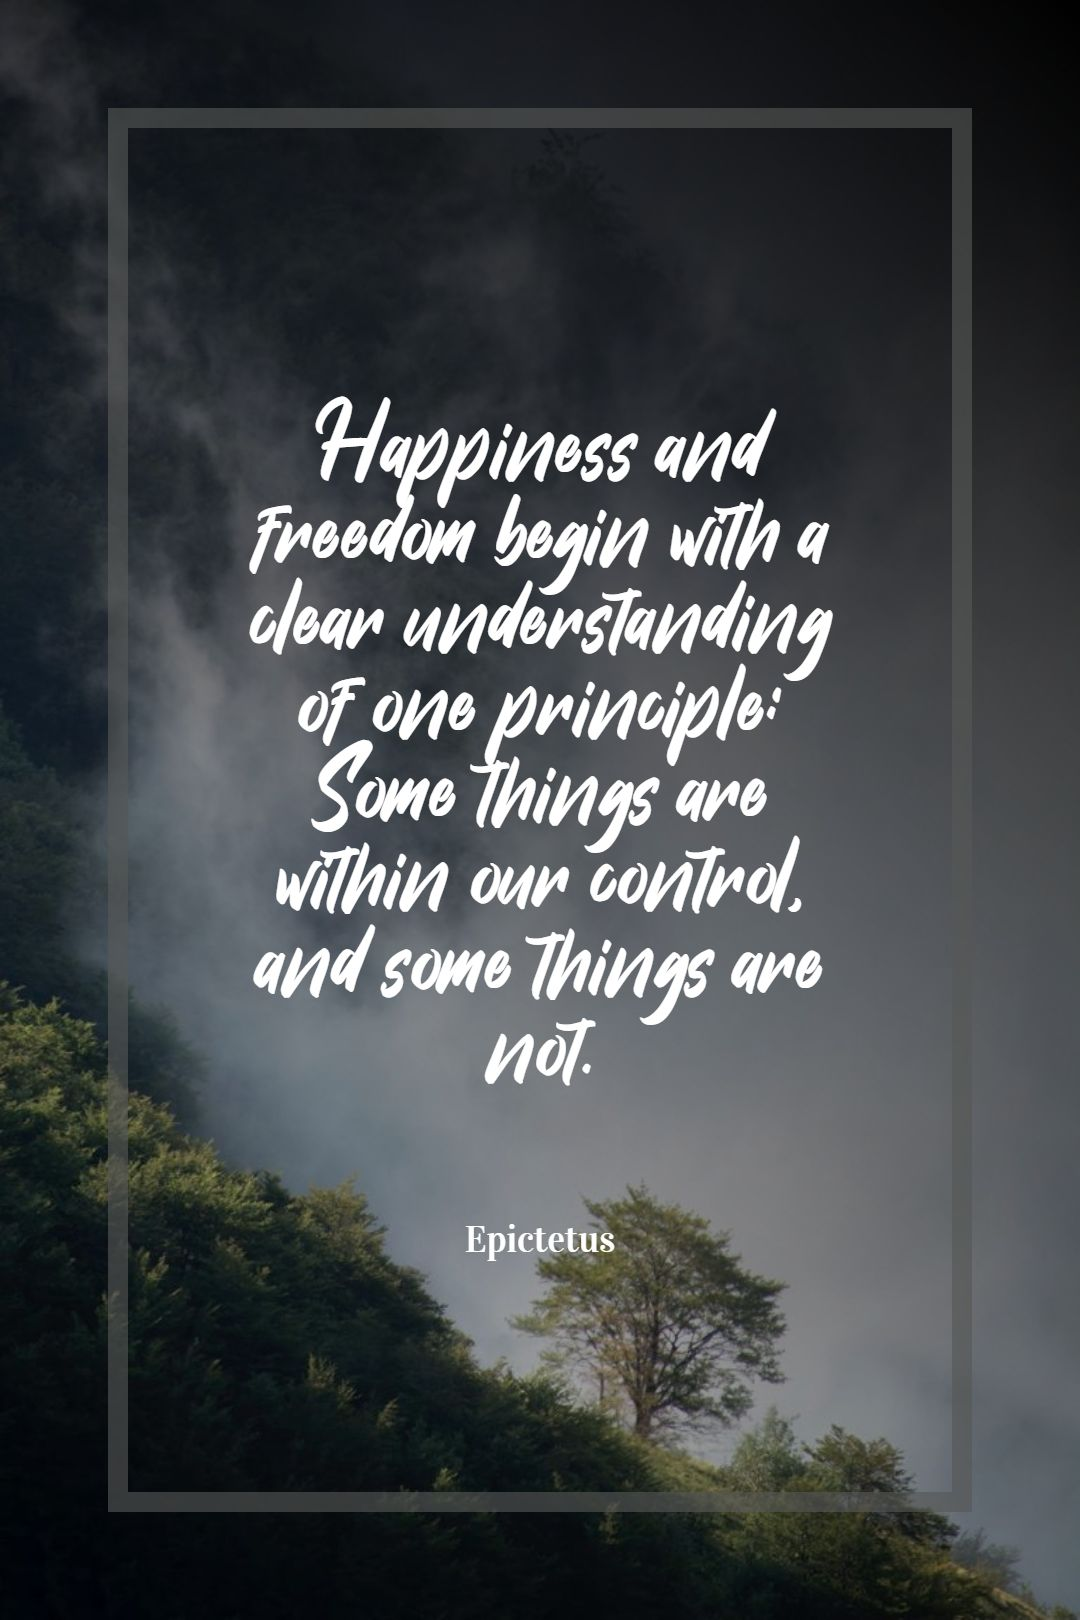 Quotes image of Happiness and freedom begin with a clear understanding of one principle: Some things are within our control, and some things are not.